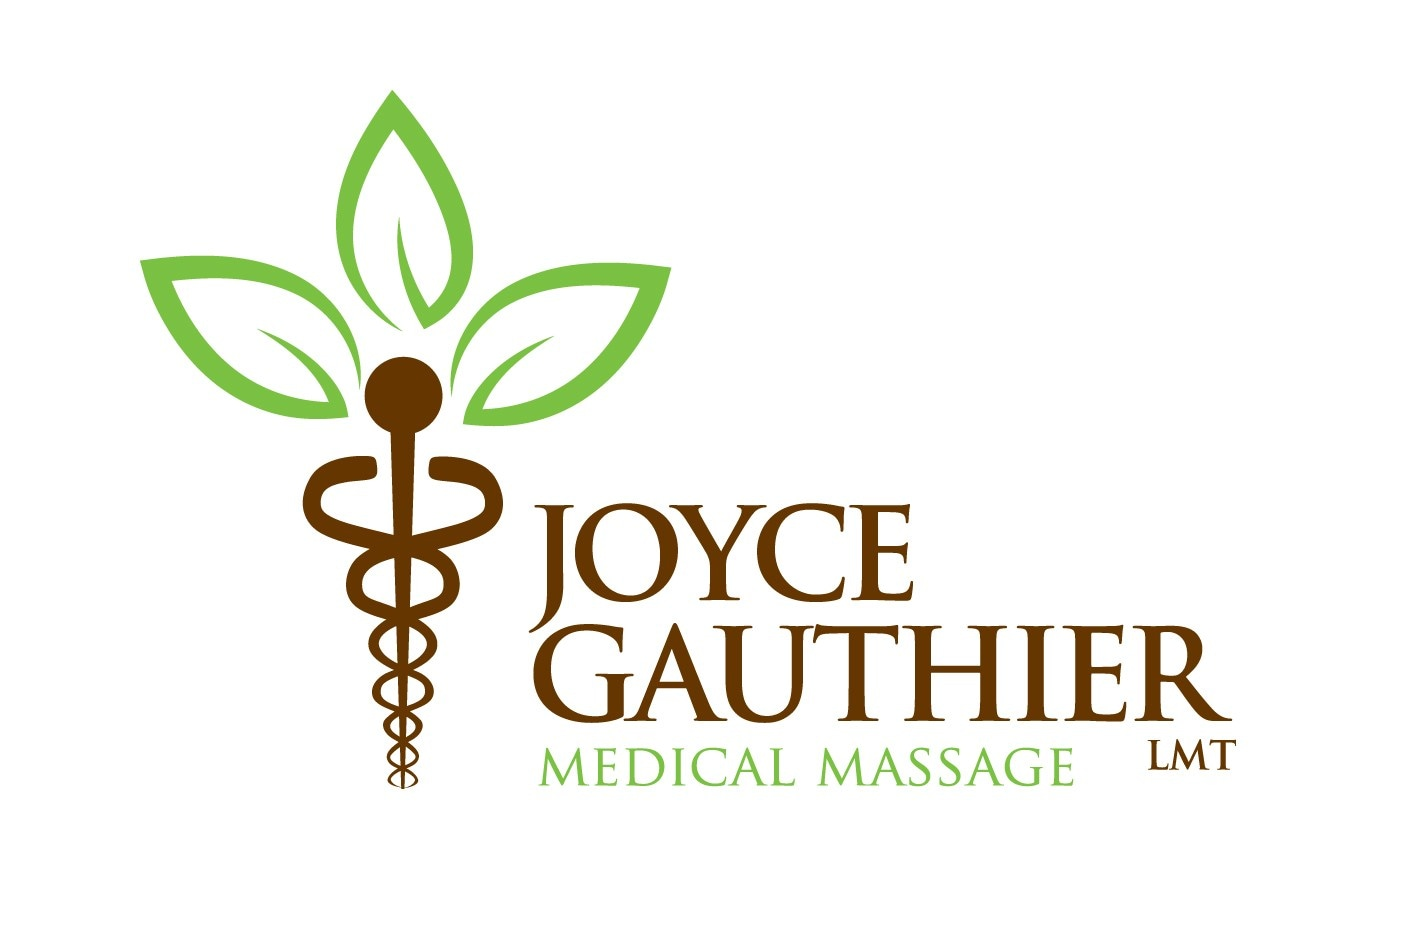 Gauthier Medical Massage